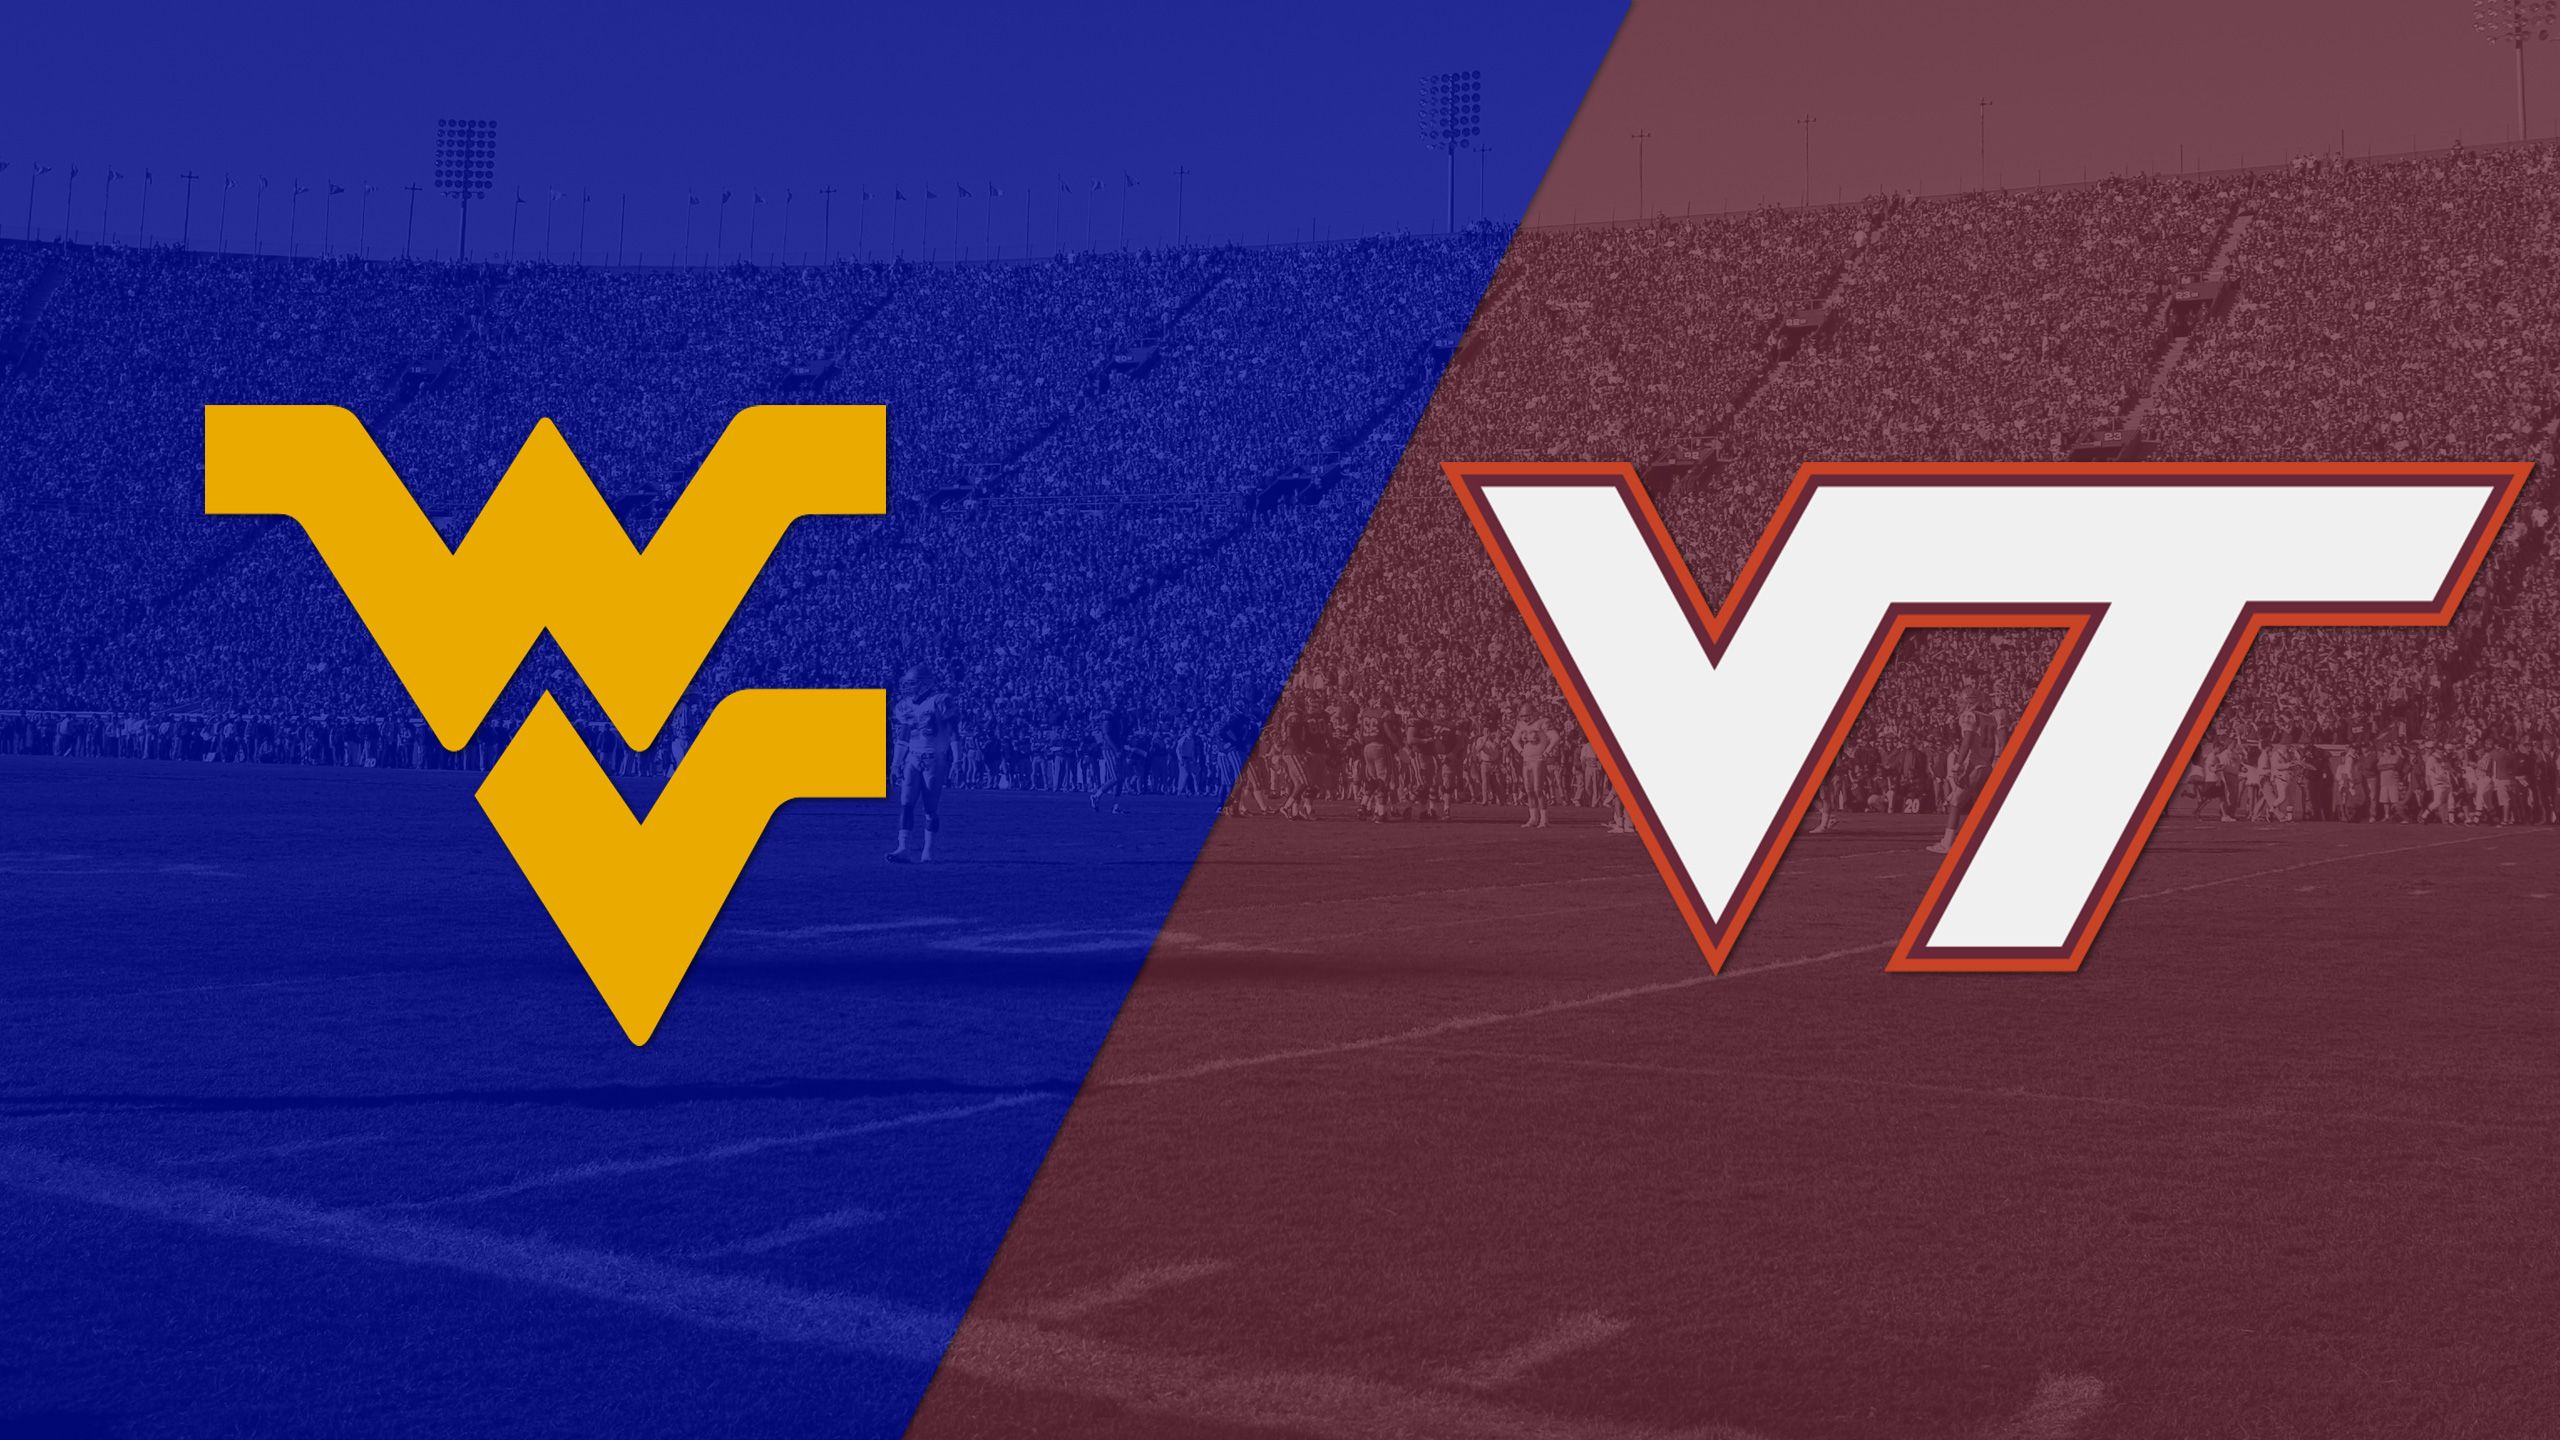 #22 West Virginia vs. #21 Virginia Tech (Football)